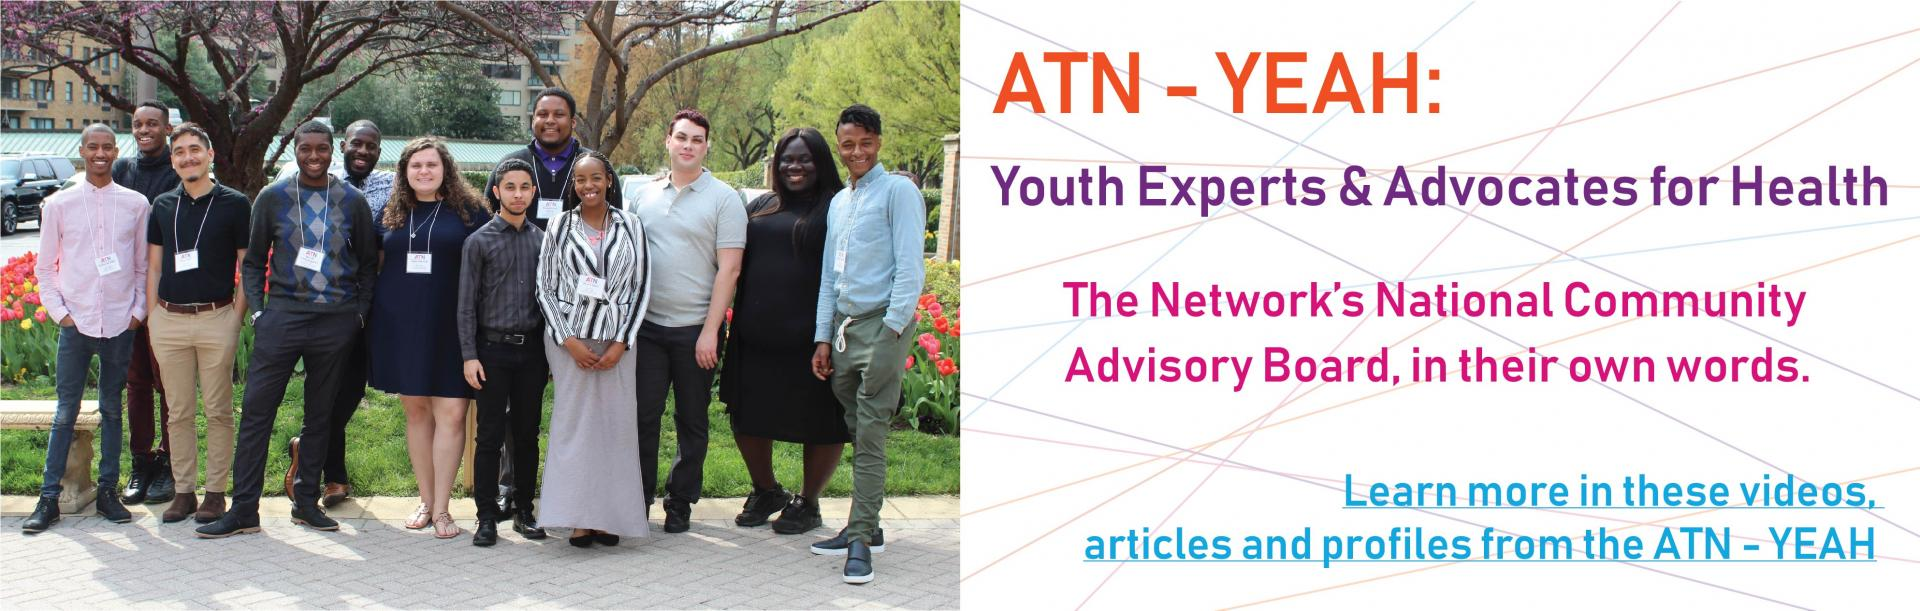 ATN-YEAH: Youth Experts and Advocates for Health. The Network's National Community Advisory Board, in their own words. Learn more in these videos, articles and profiles from the ATN-YEAH.